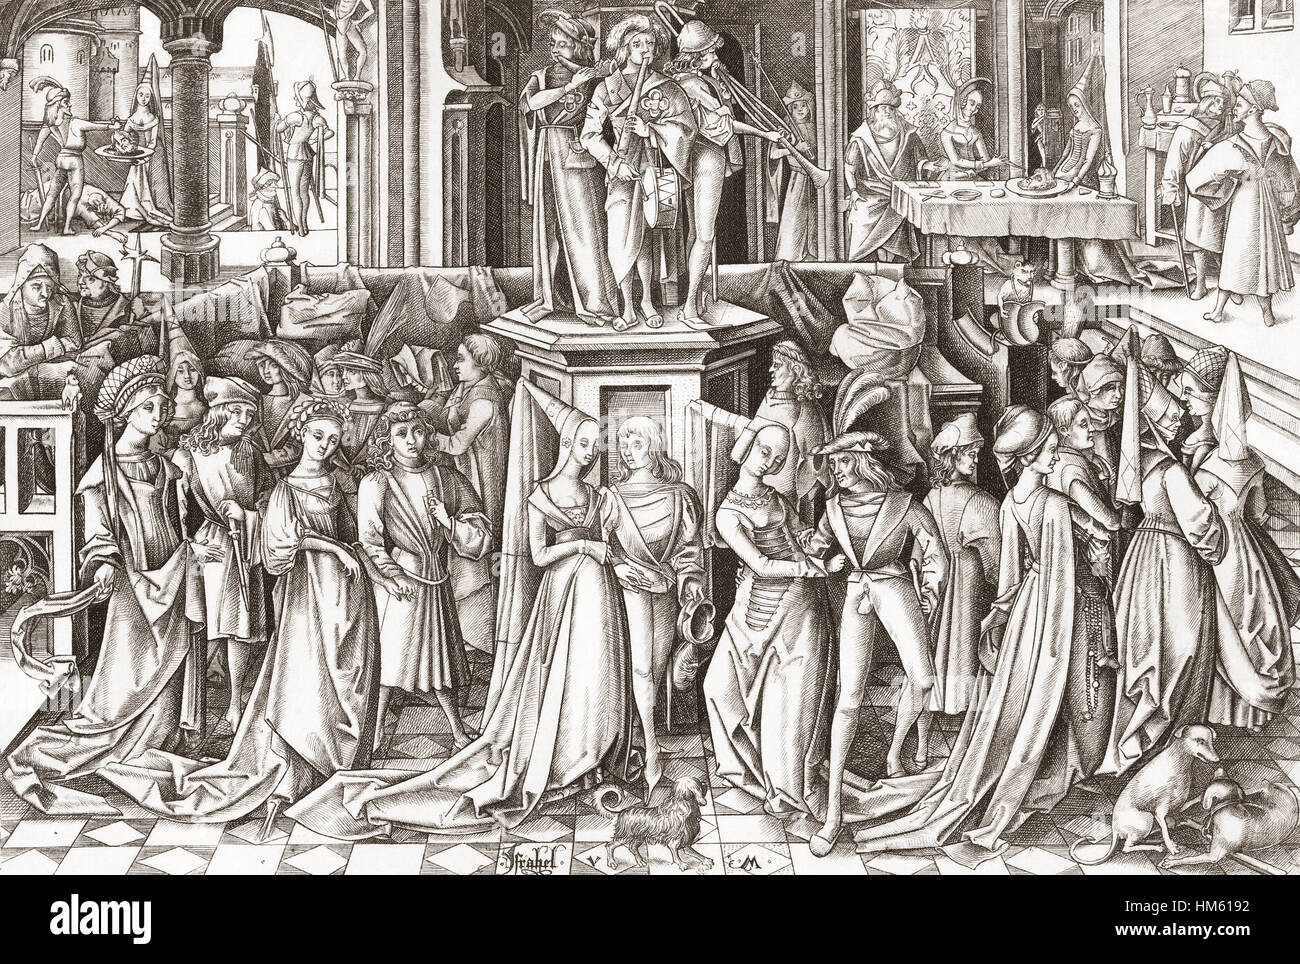 The Feast of Salome, after a 15th or 16th century print engraved by German printmaker and goldsmith Israhel van - Stock Image